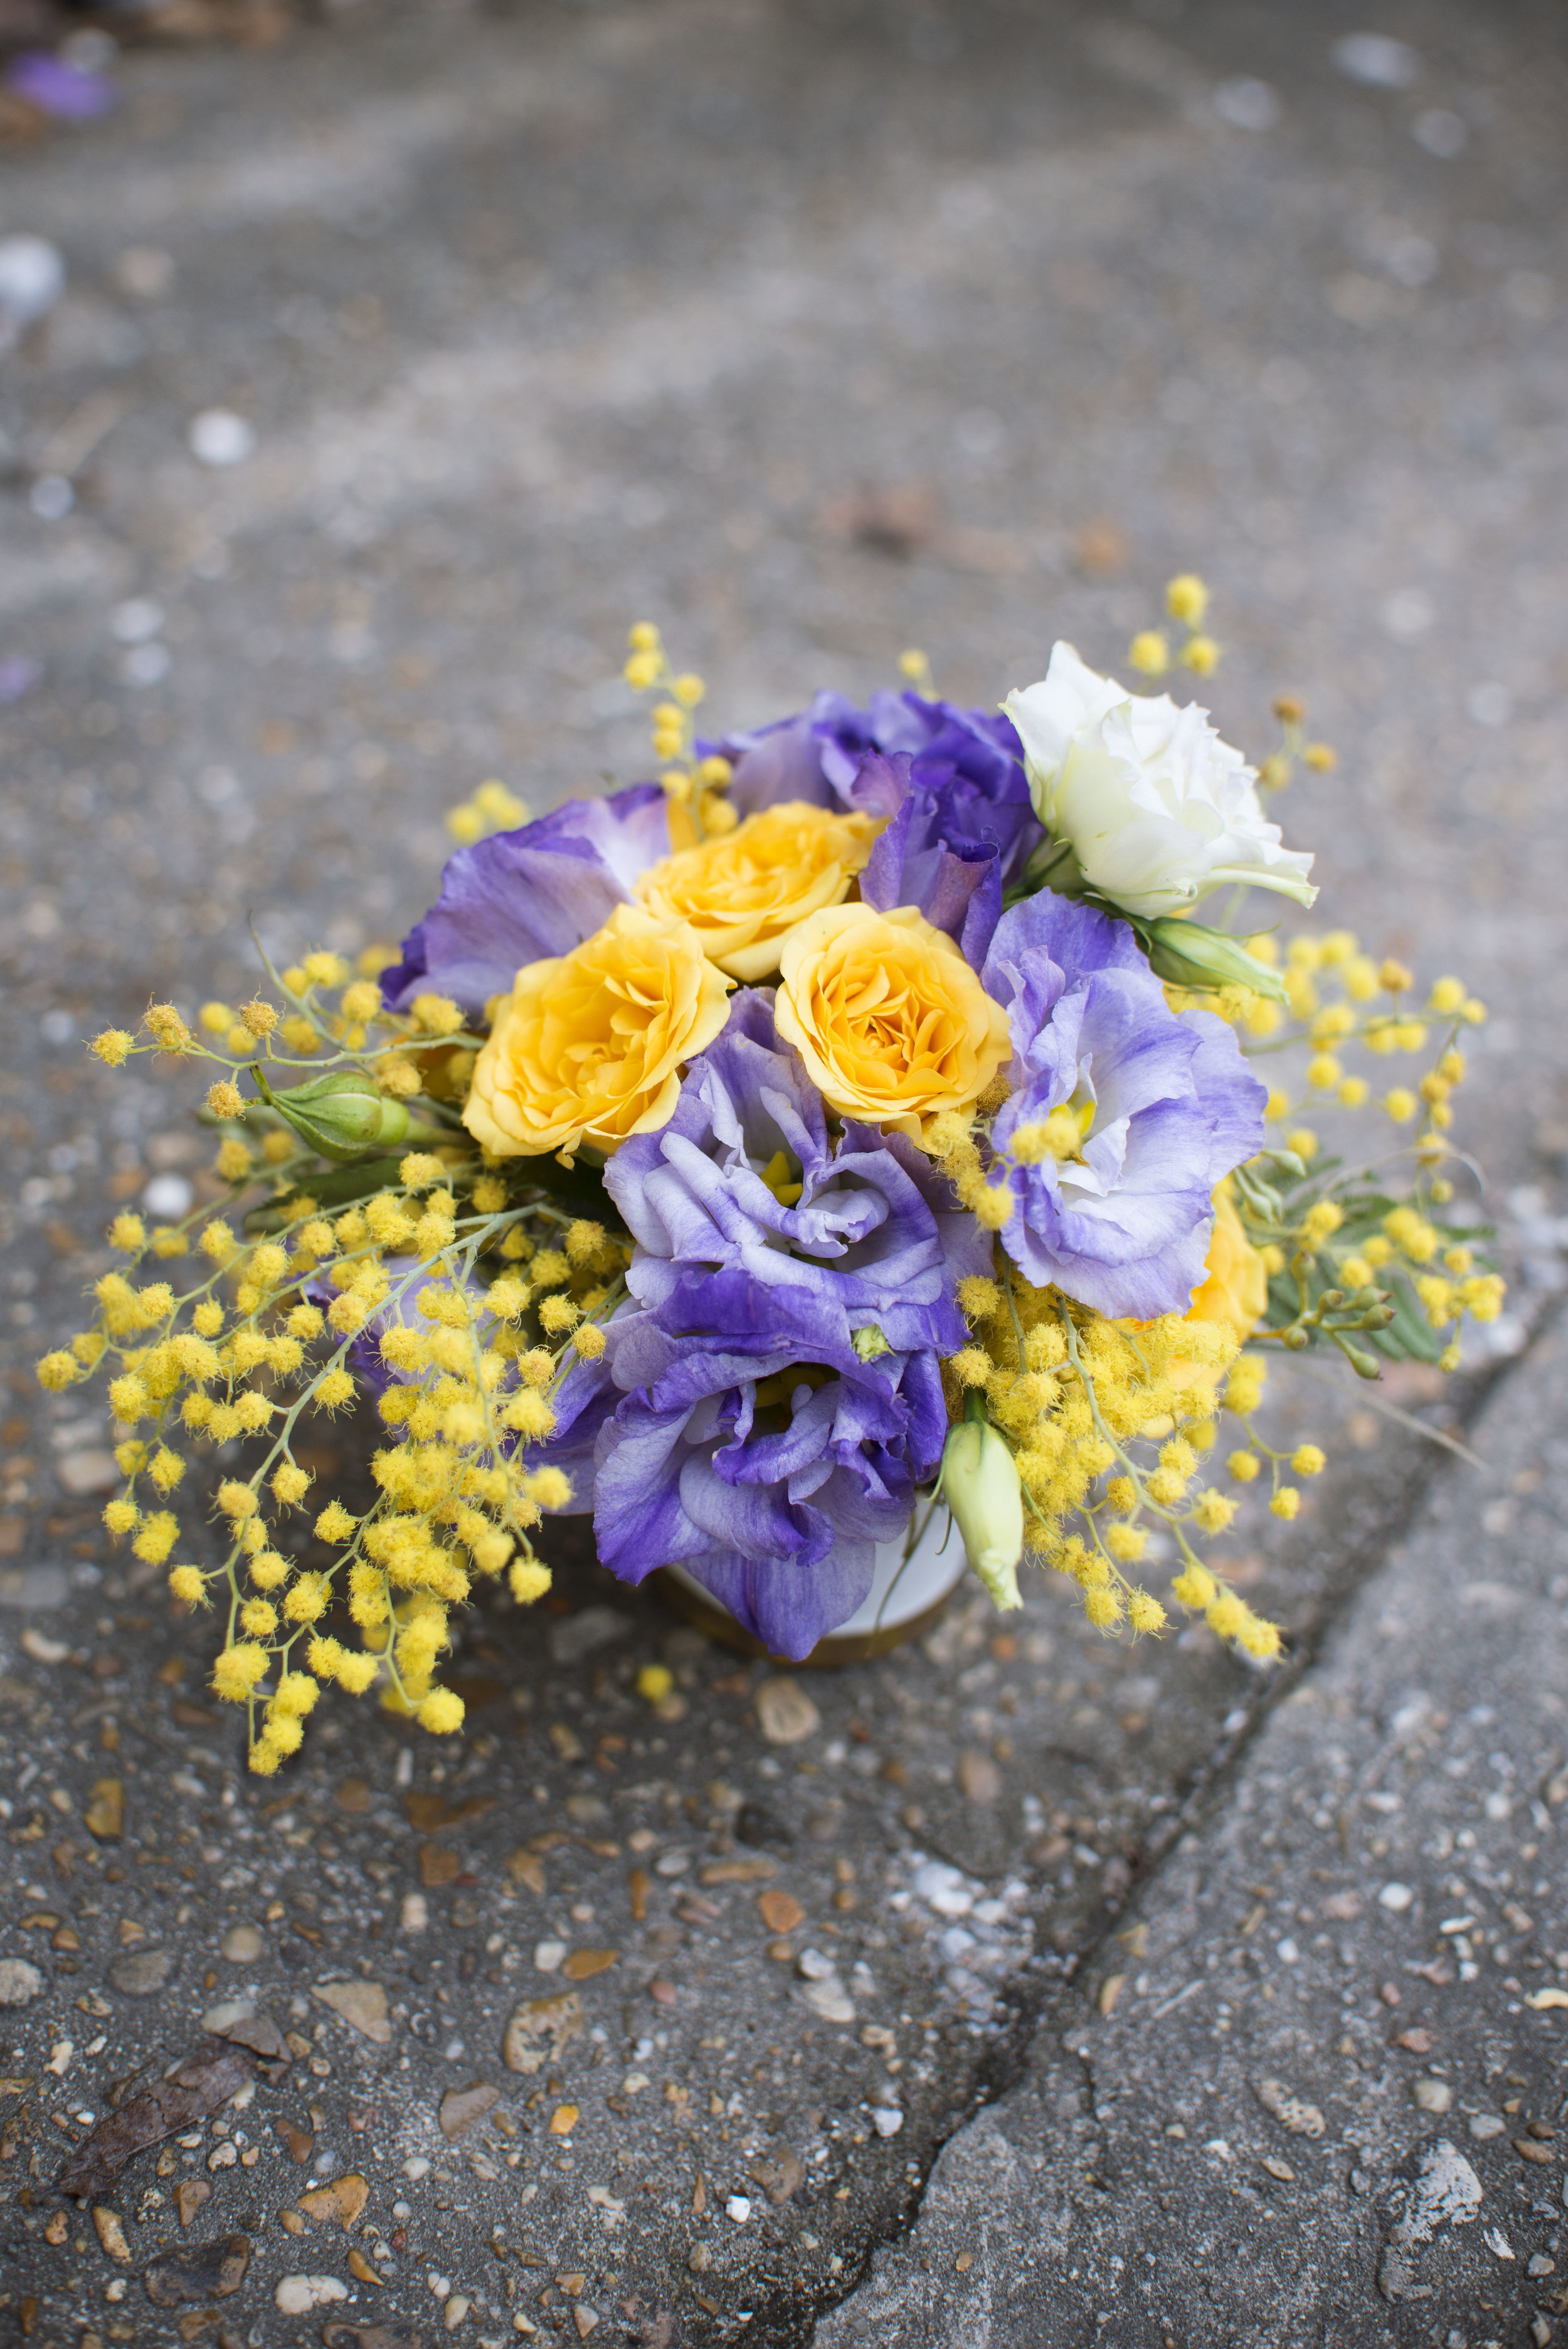 mardi gras mitchs flowers new orleans florist monique chauvin tillandsia allium organic floral design wedding flowers centerpiece 3.jpg